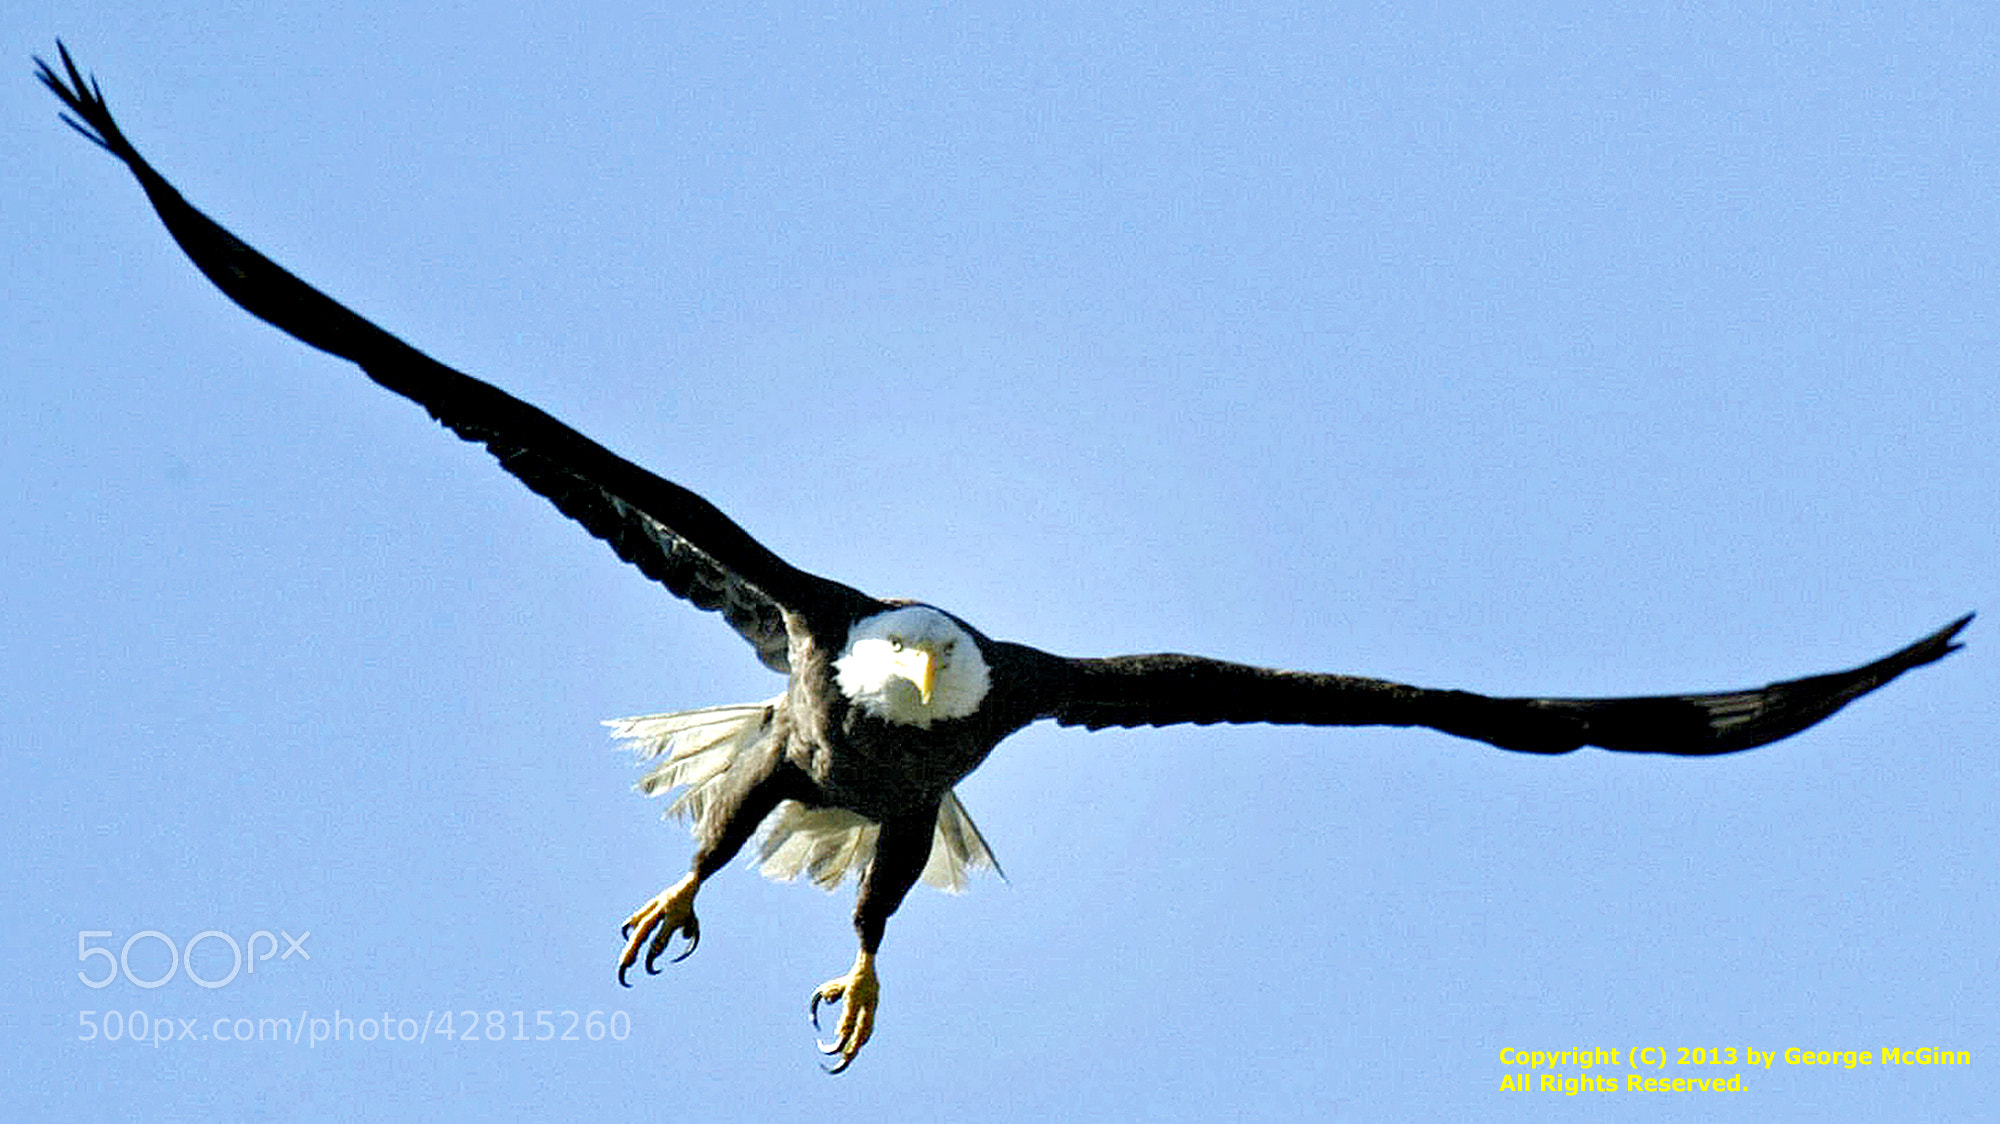 Photograph The Eagle Takes Flight (WILD) by George McGinn on 500px